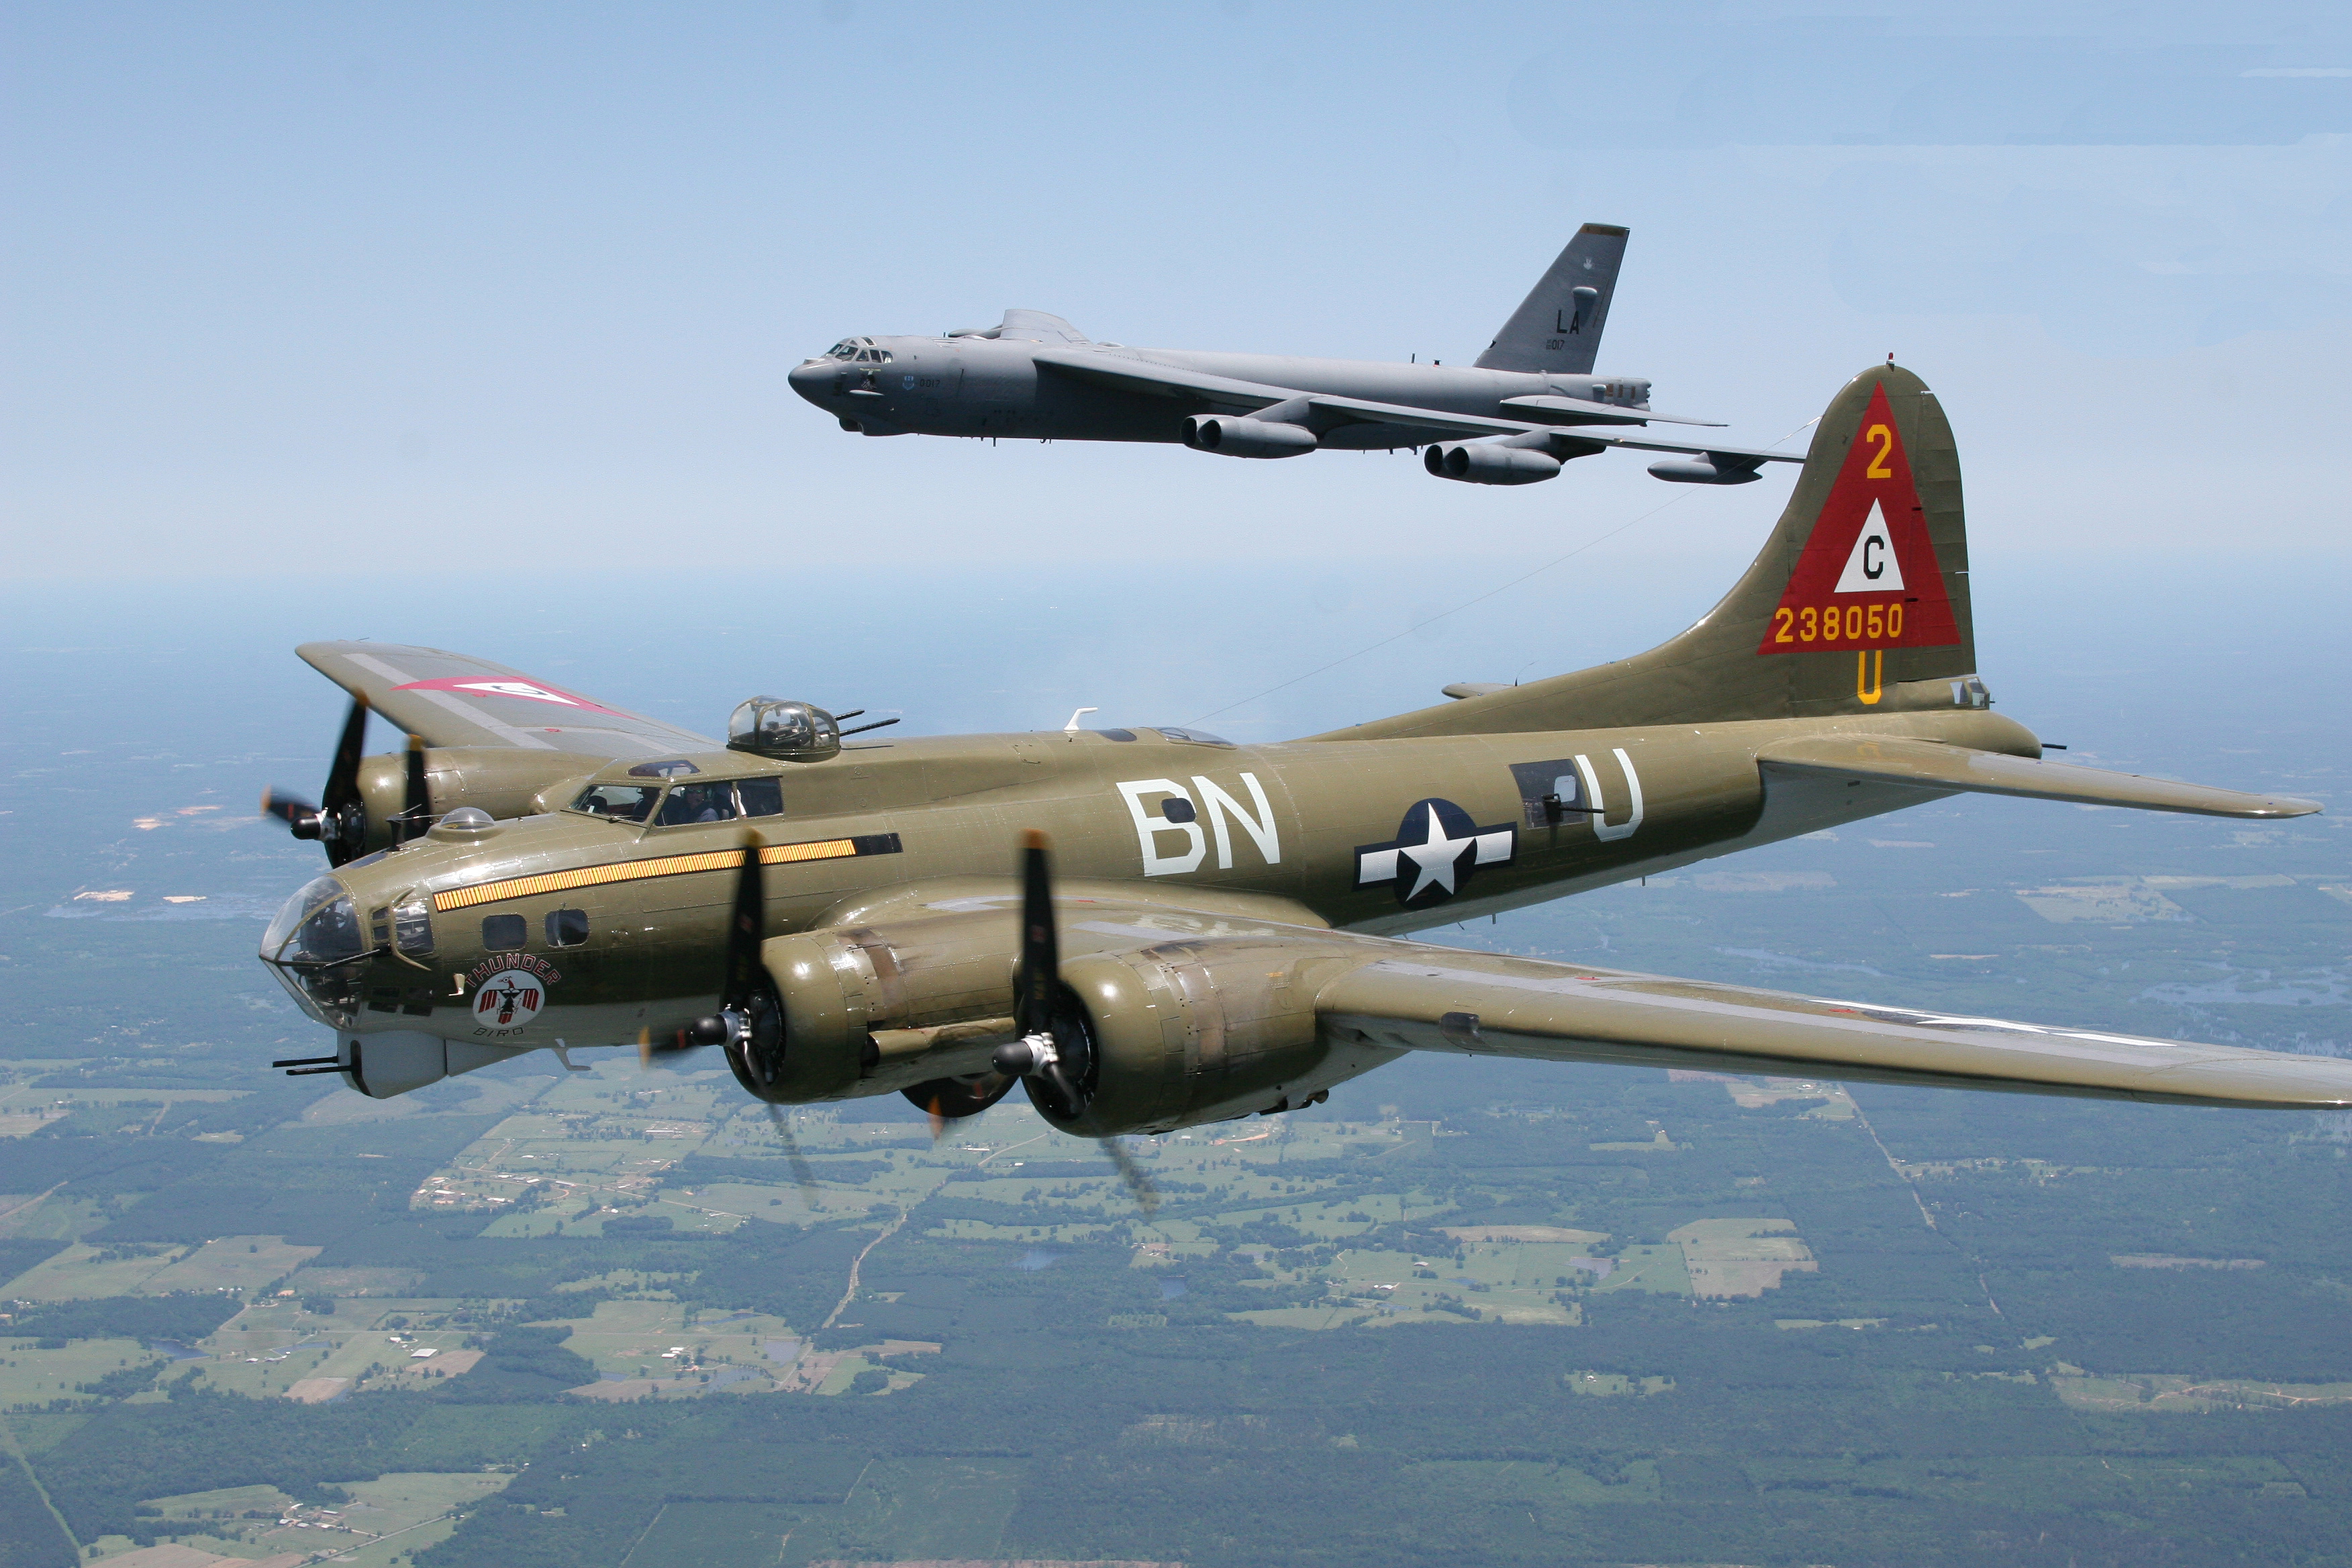 Free Download B17 Hd Wallpaper Aircraft Wallpapers 3504x2336 For